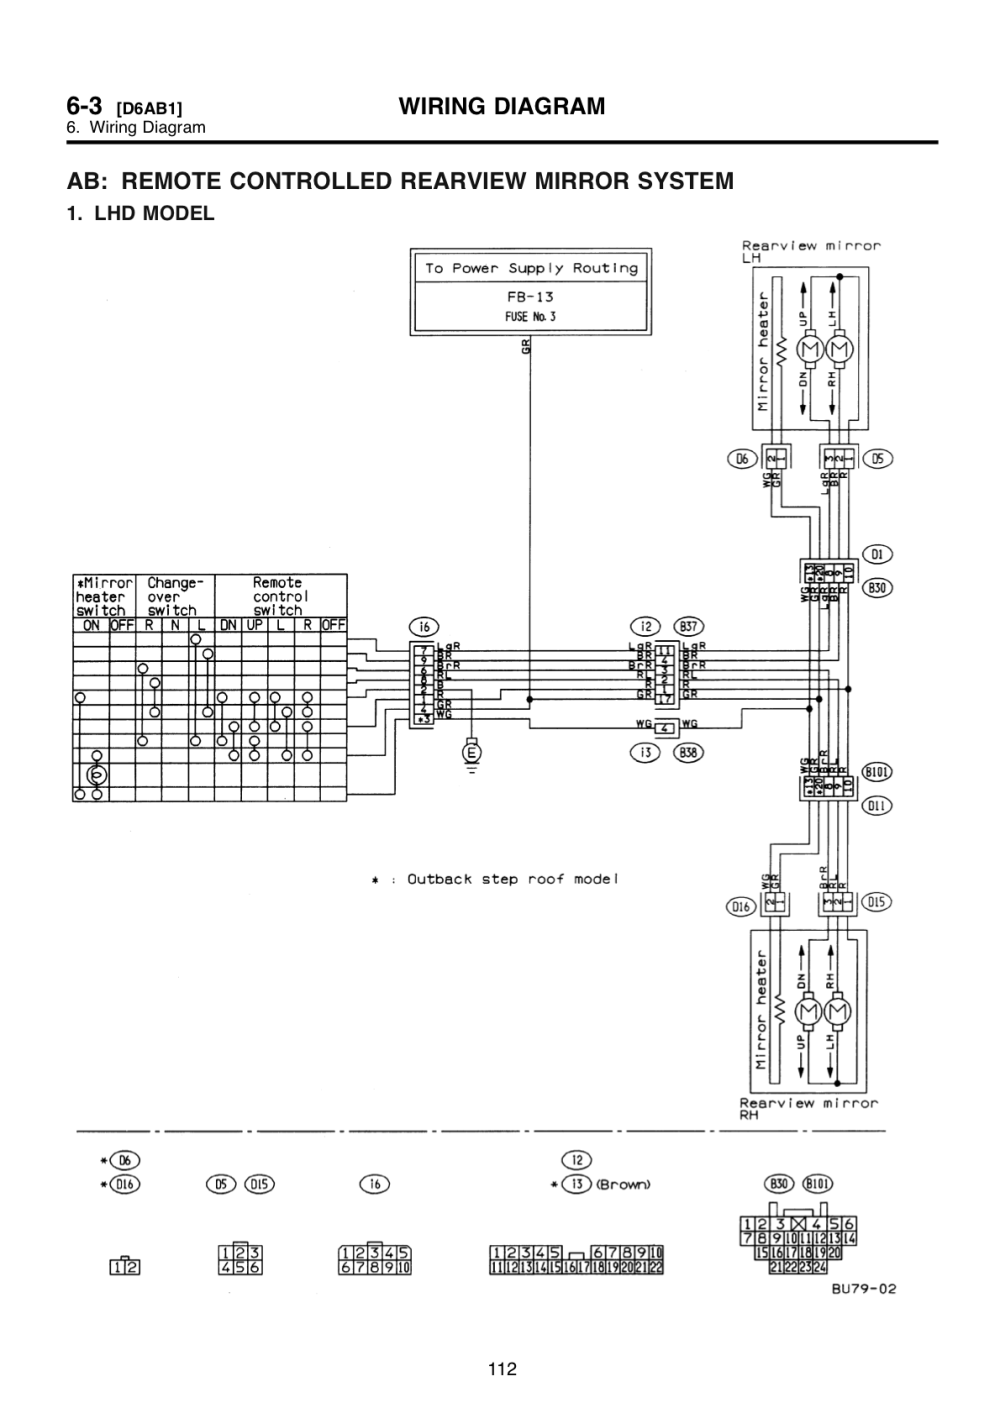 medium resolution of 08 subaru impreza front wiper motor diagram detailed wiring diagrams chevy malibu wiper motor 08 subaru impreza front wiper motor diagram